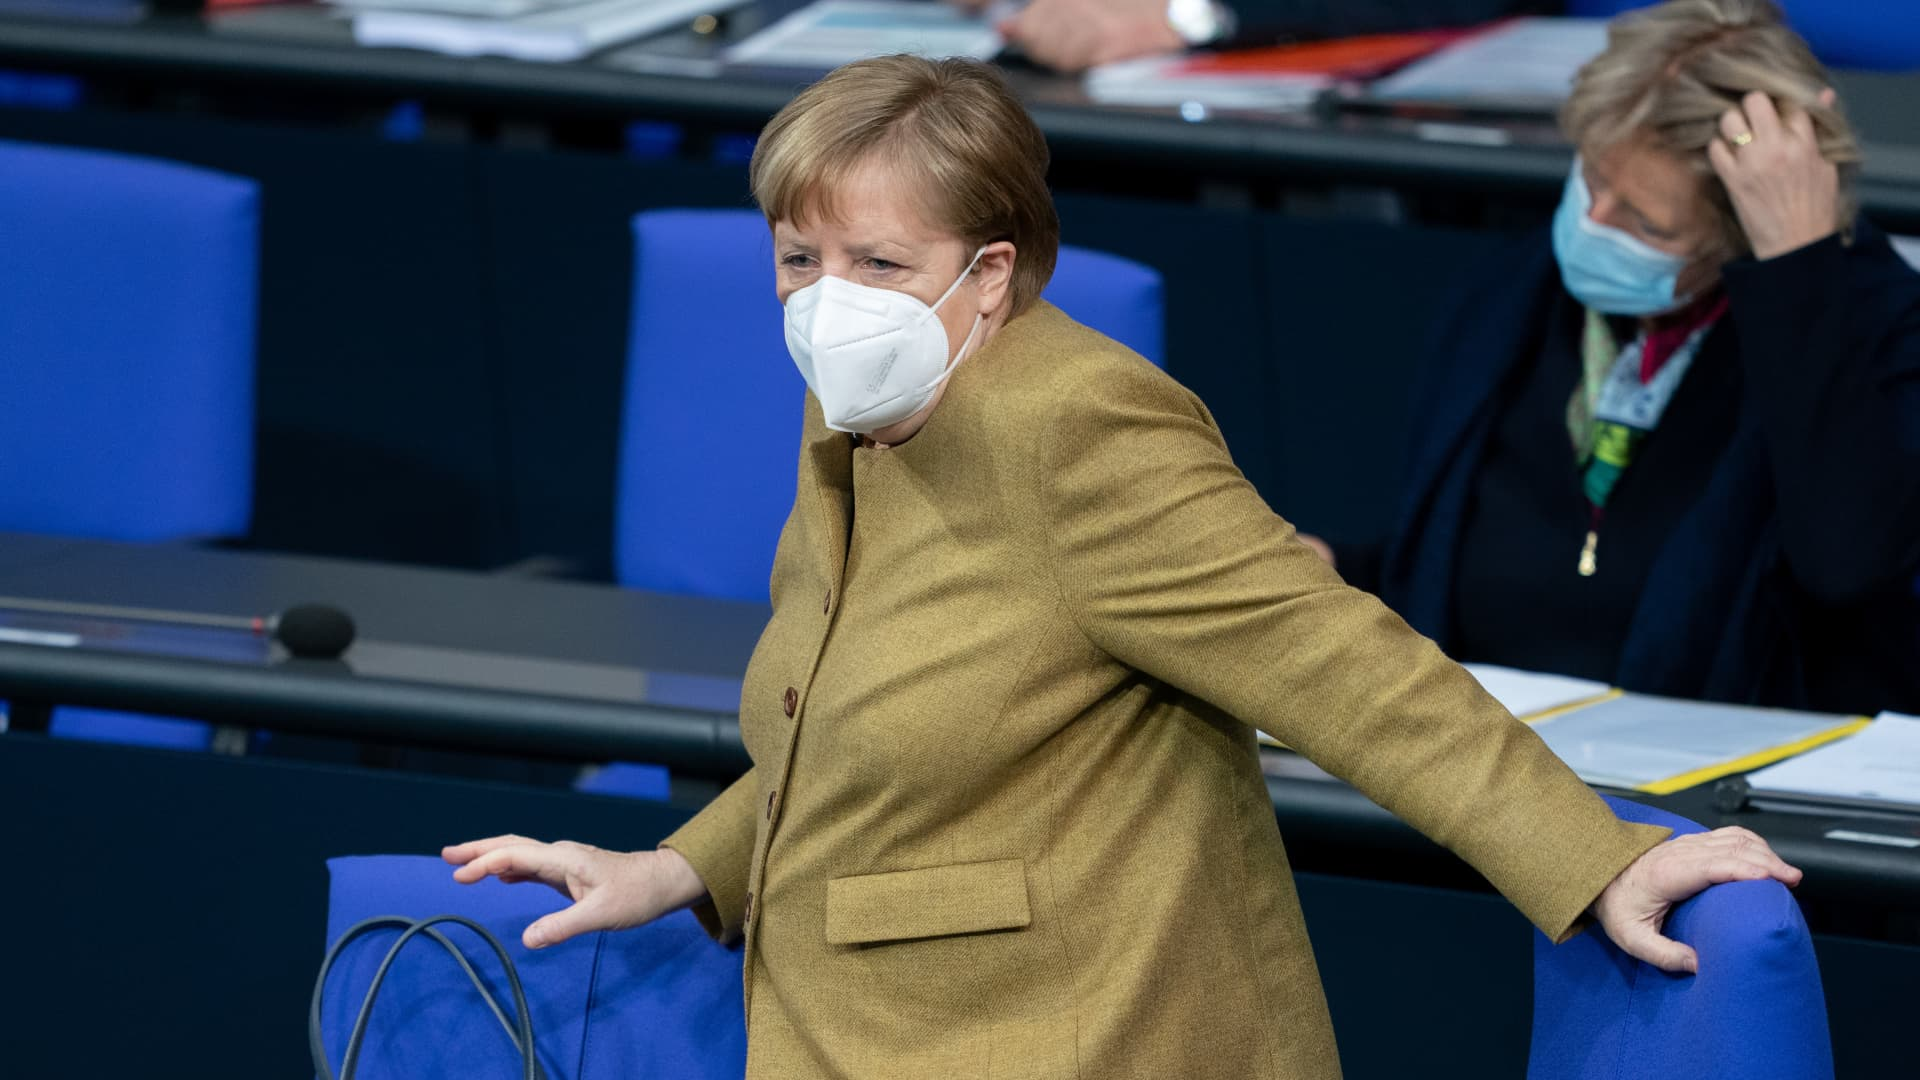 Chancellor Angela Merkel attends the 215th session of the Bundestag. Topics include the epidemic situation of national scope and the effects of the lockdown on the economy.